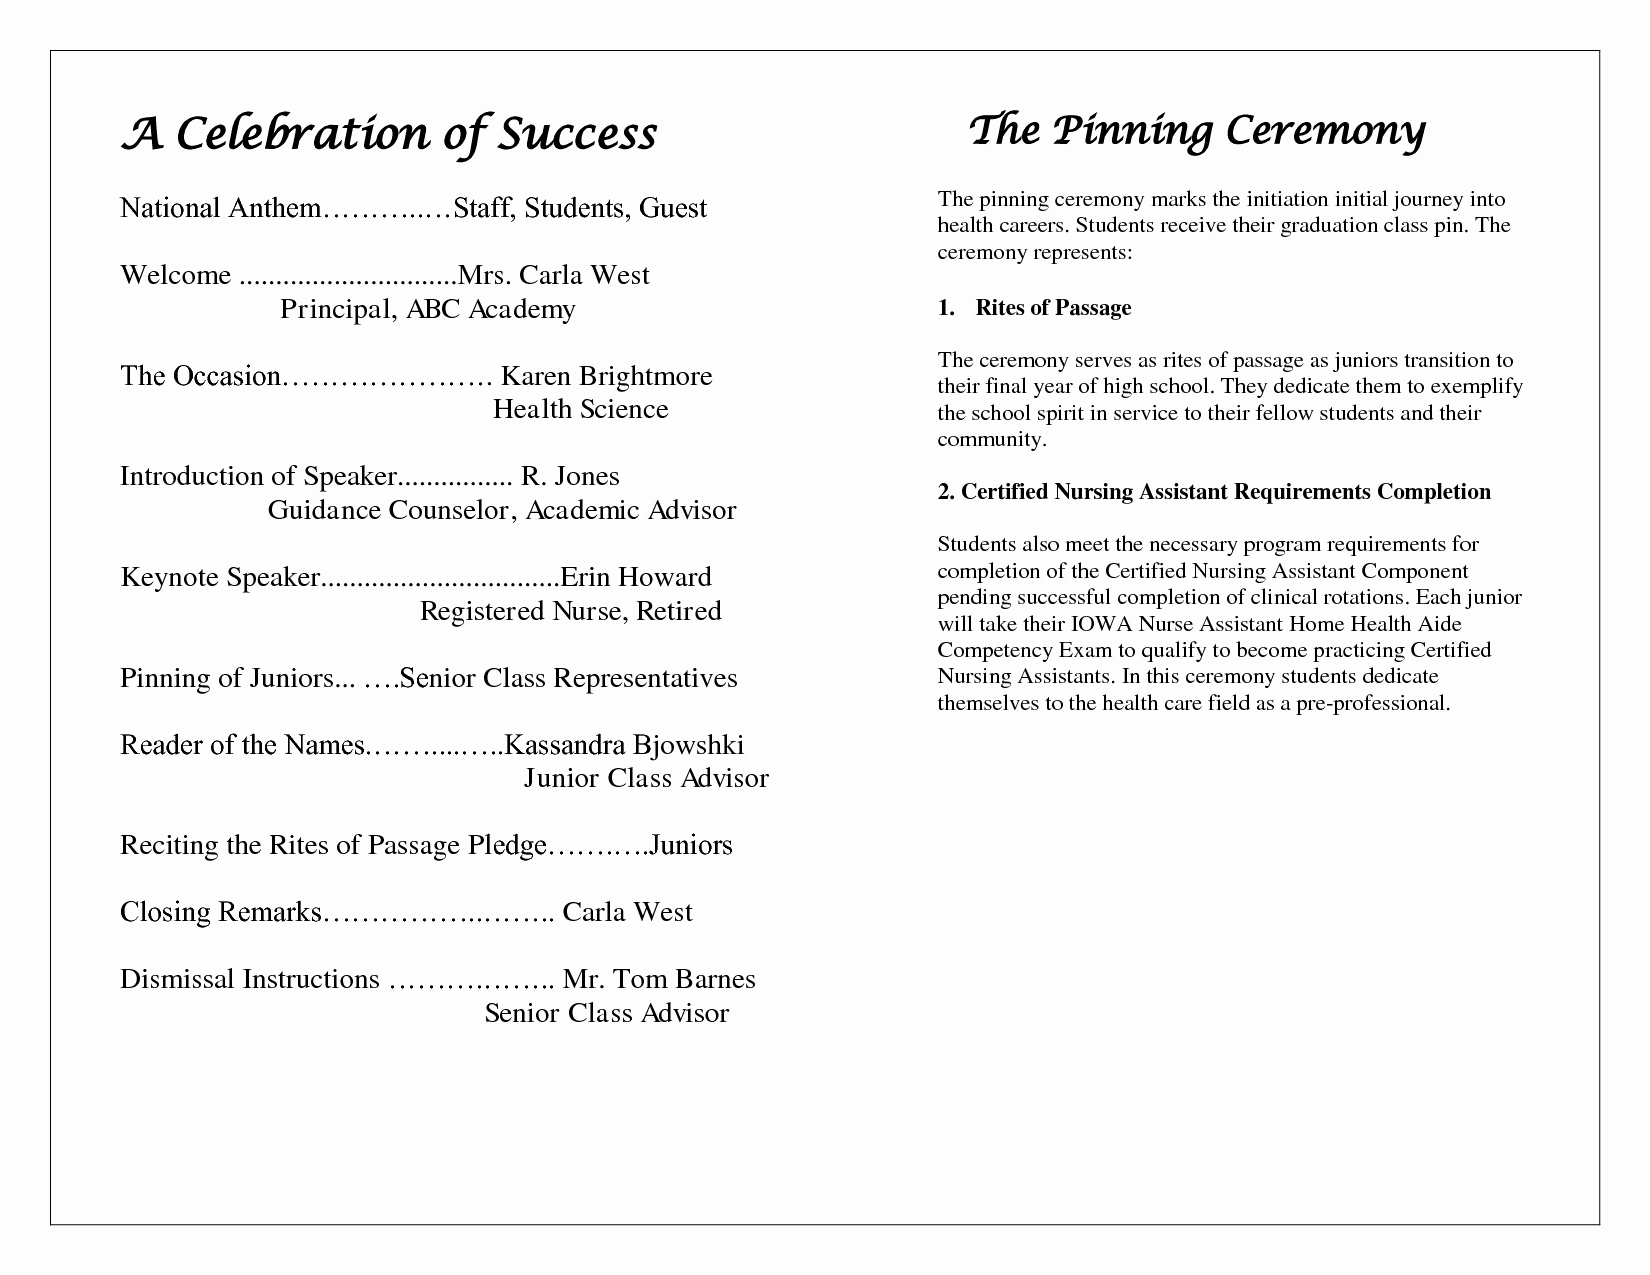 Awards Ceremony Program Sample Elegant Award Ceremony Program Template – Free Download – December 2018 Calendar